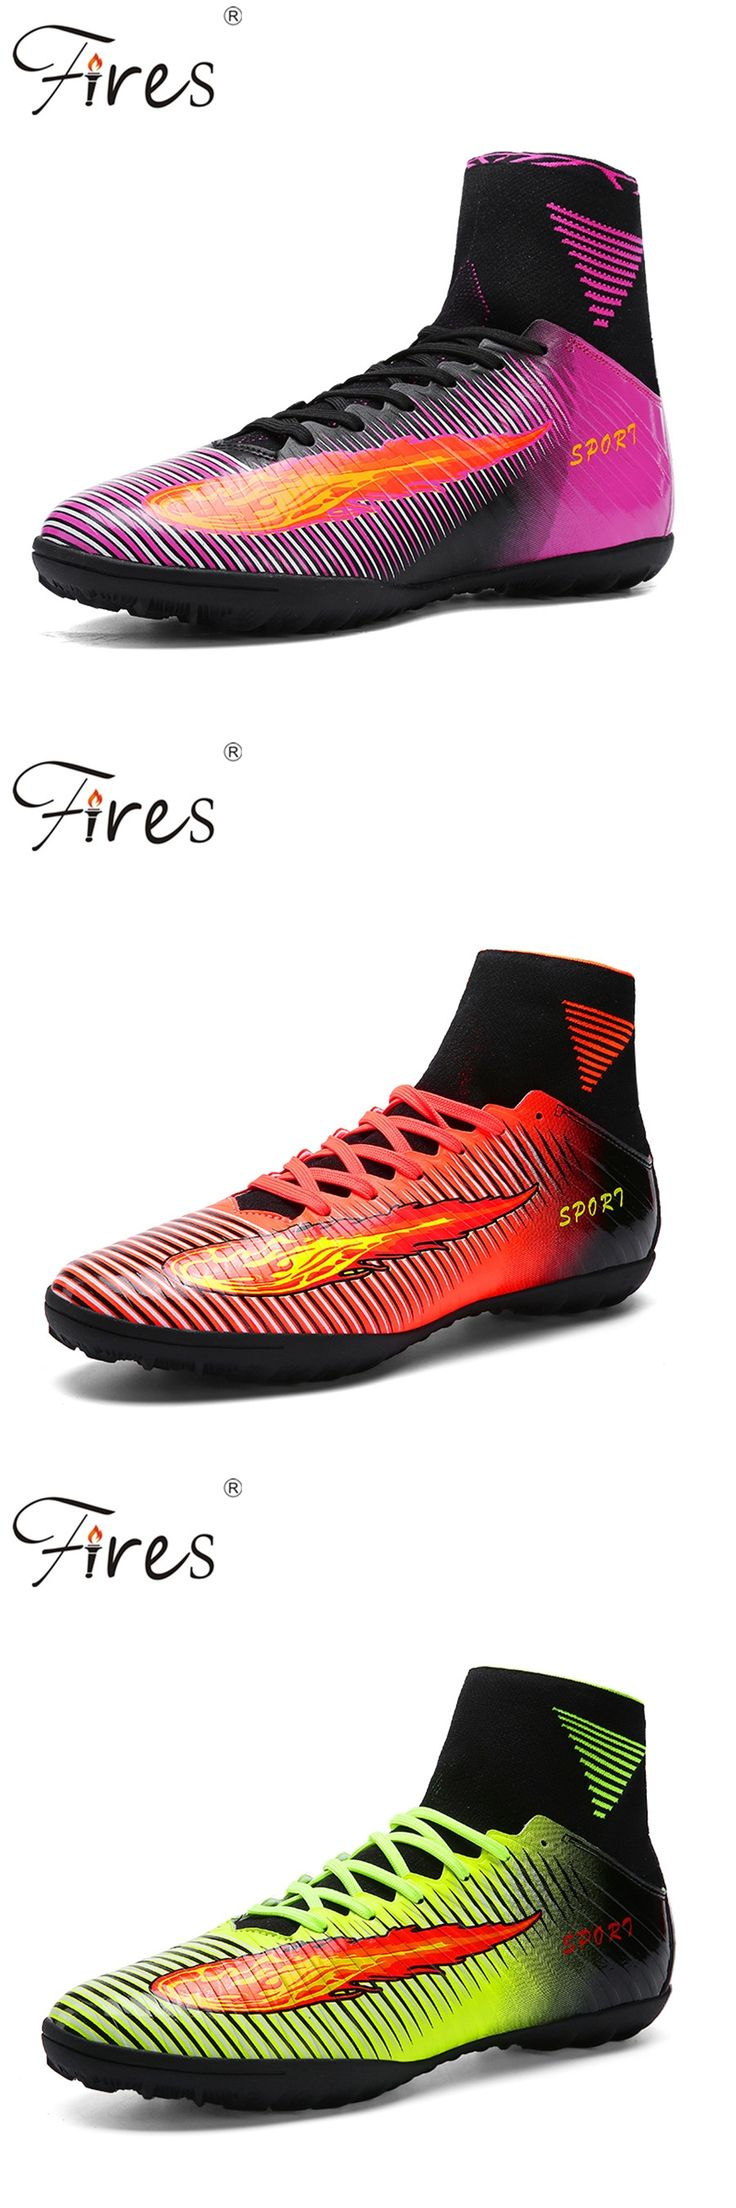 ae5982bf0 best boots for summer soccer